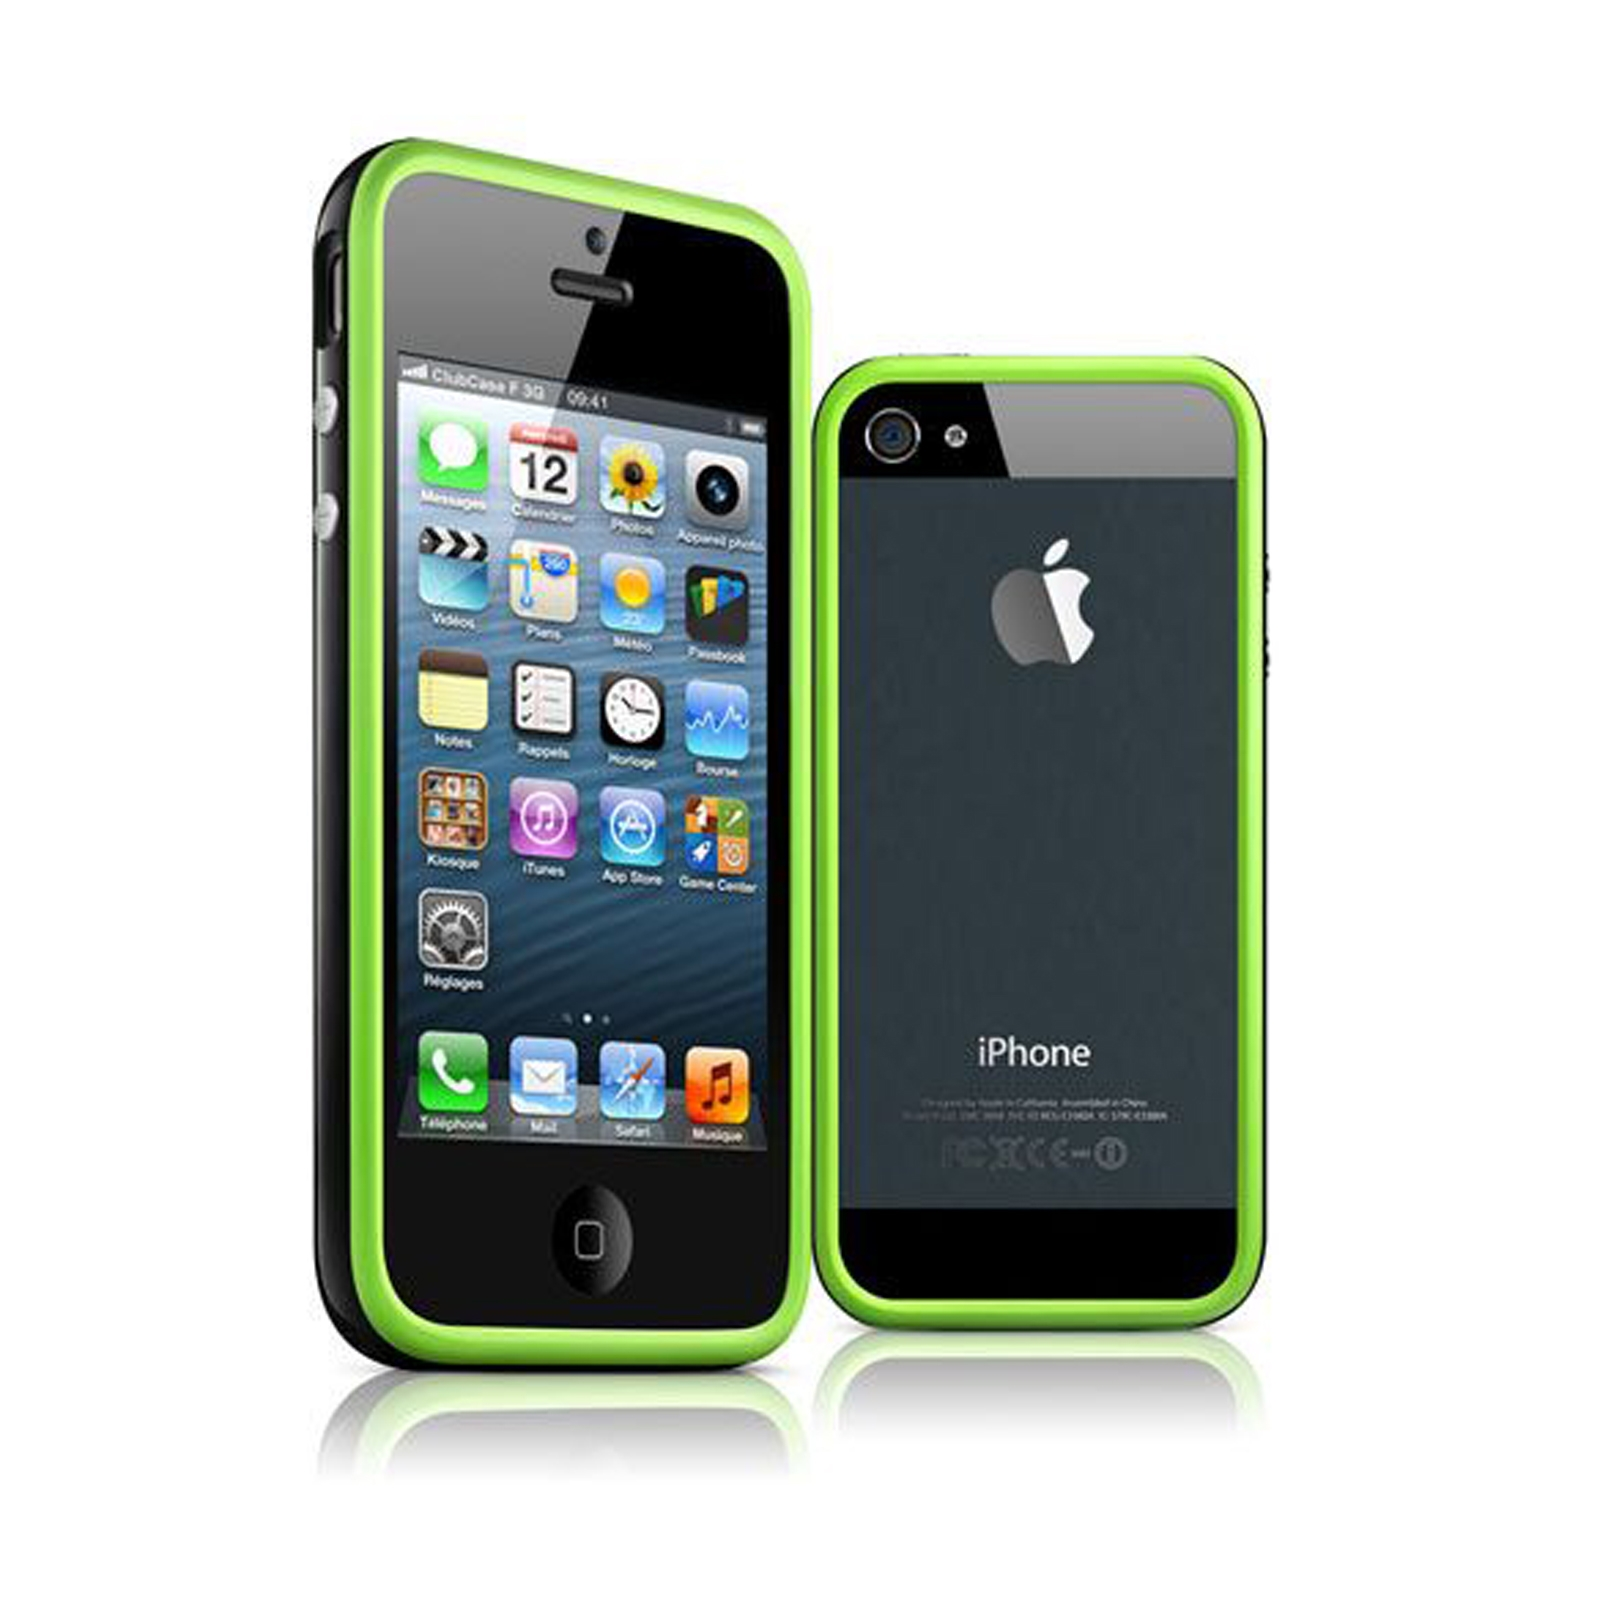 coque bumper iphone 5s 5 hq vert noir. Black Bedroom Furniture Sets. Home Design Ideas